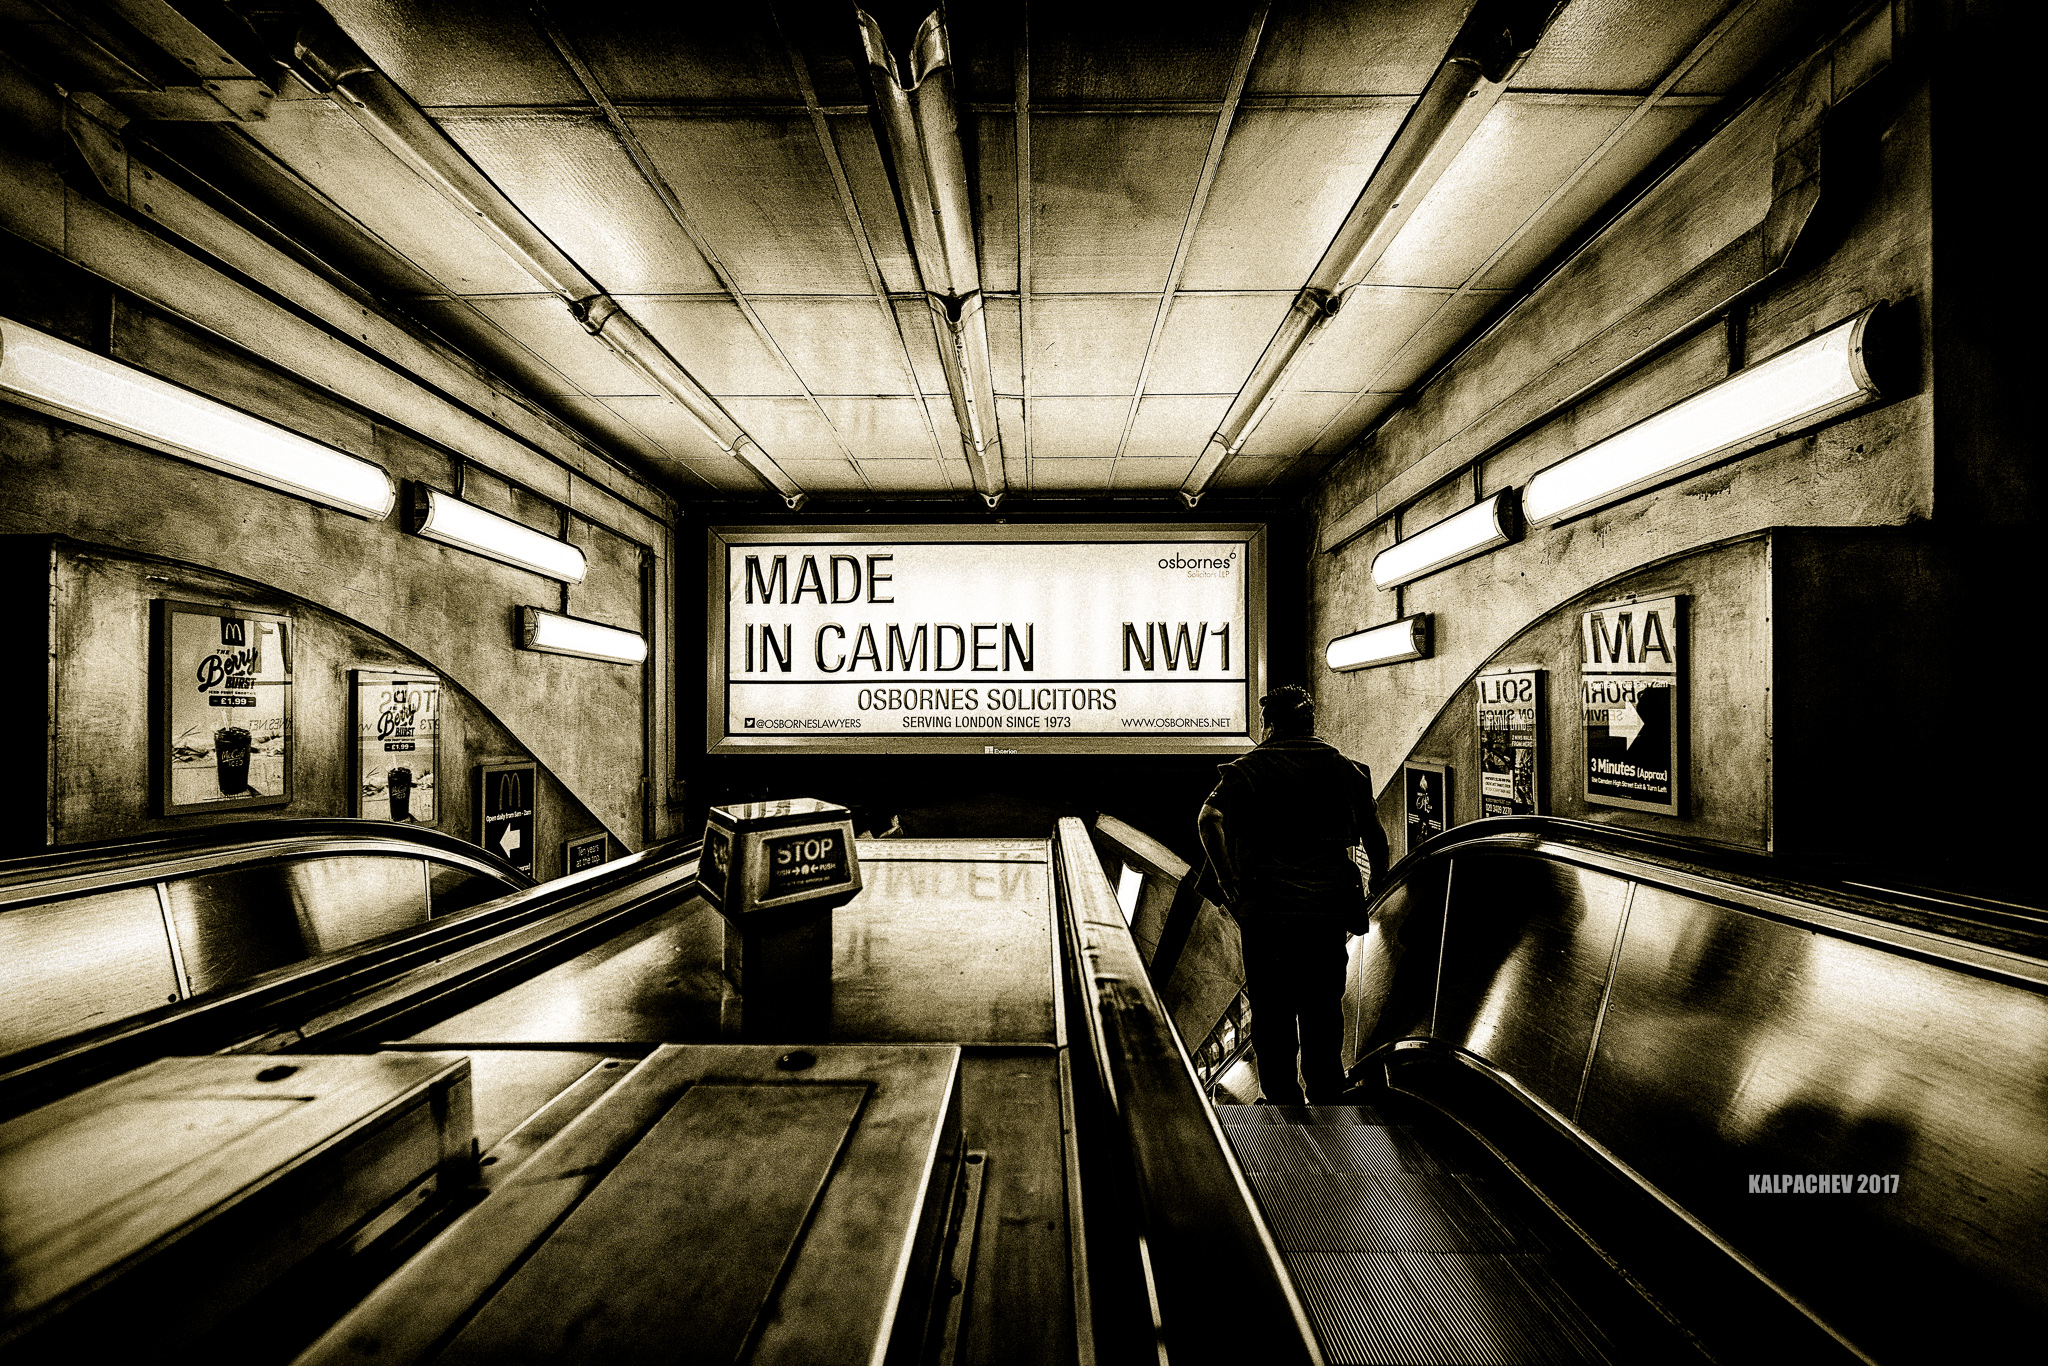 Made in Camden